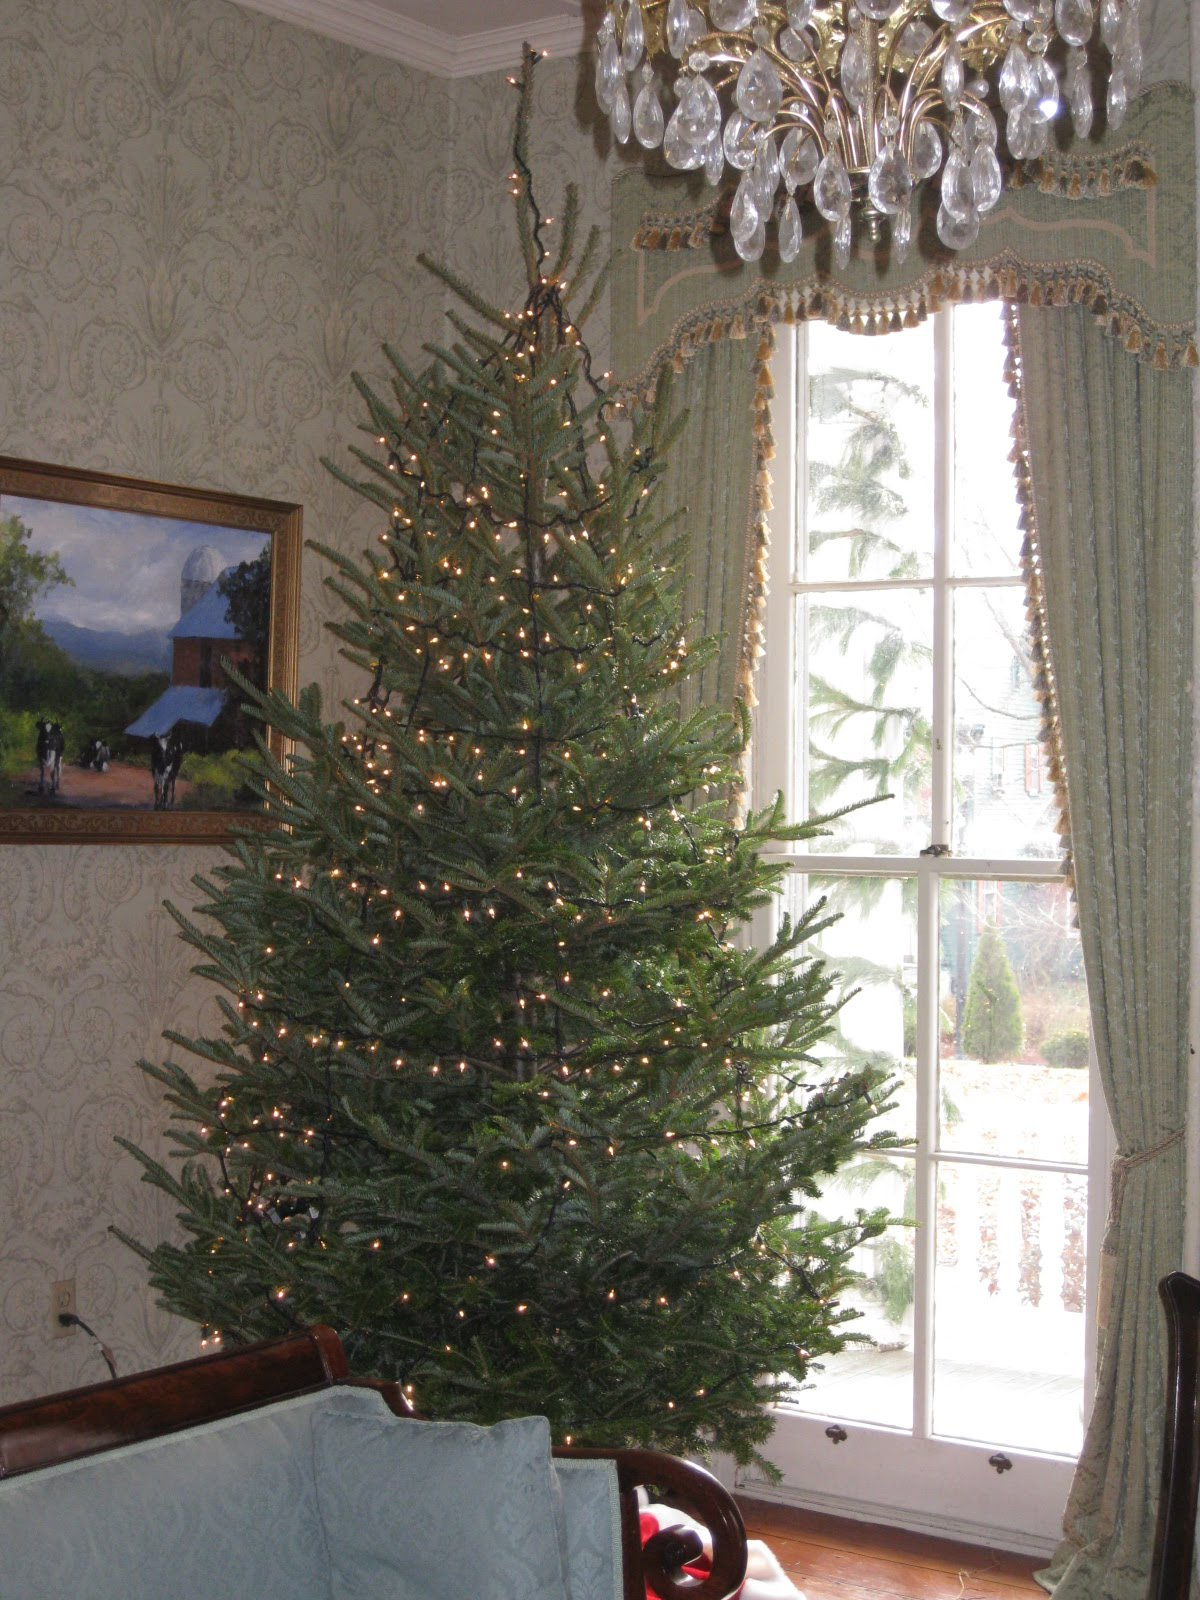 Tips for Treating, Lighting, and Decorating a Christmas Tree